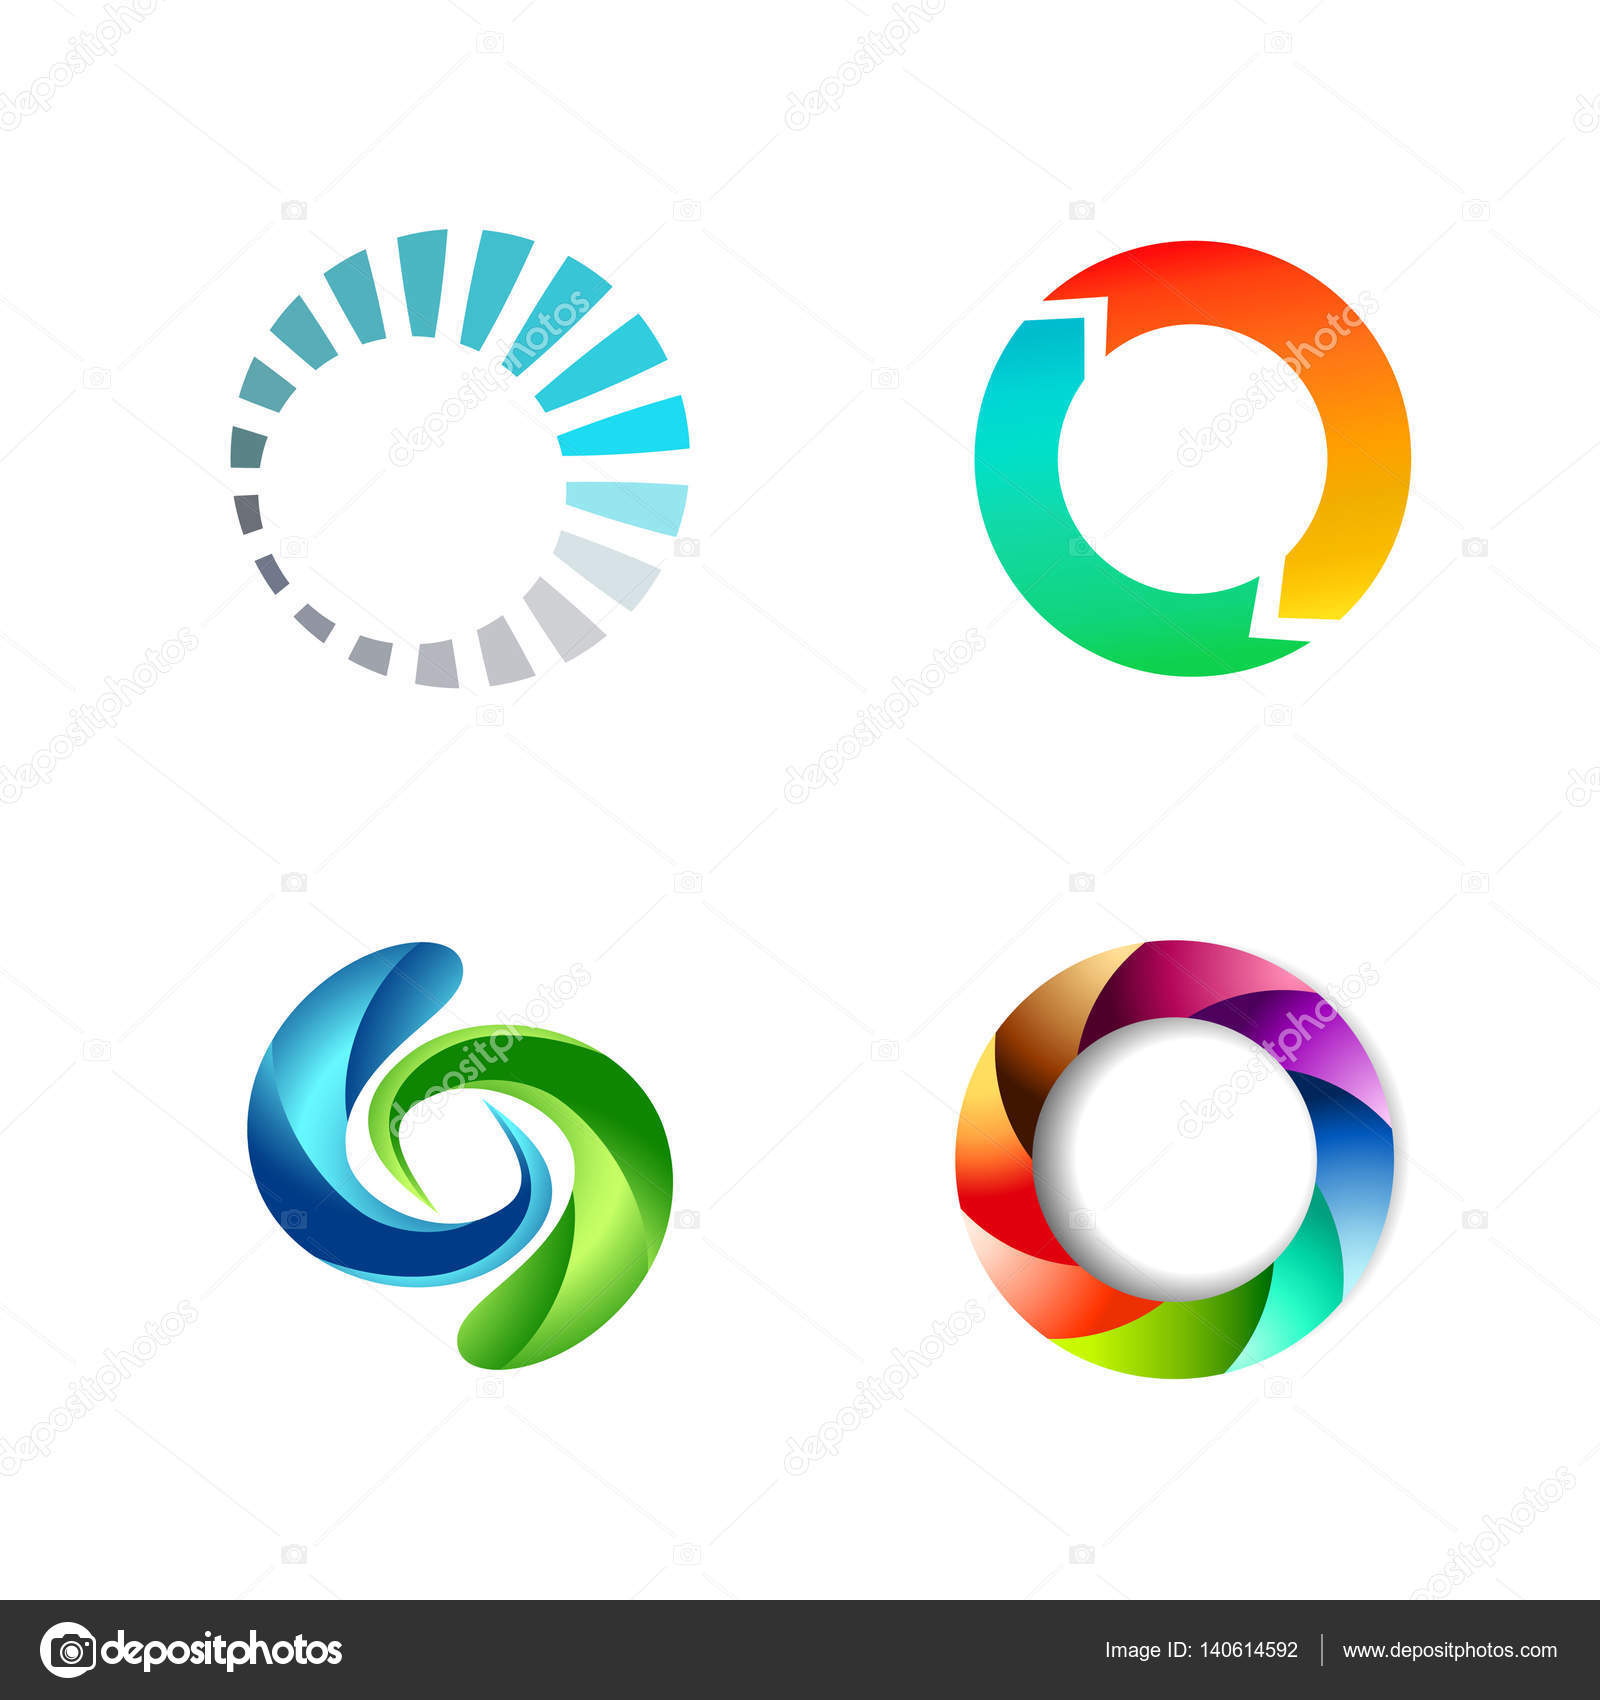 Set Of Colorful Spa Logo Vectors: Different Round Circle Sign Logo Set Vector Image By S